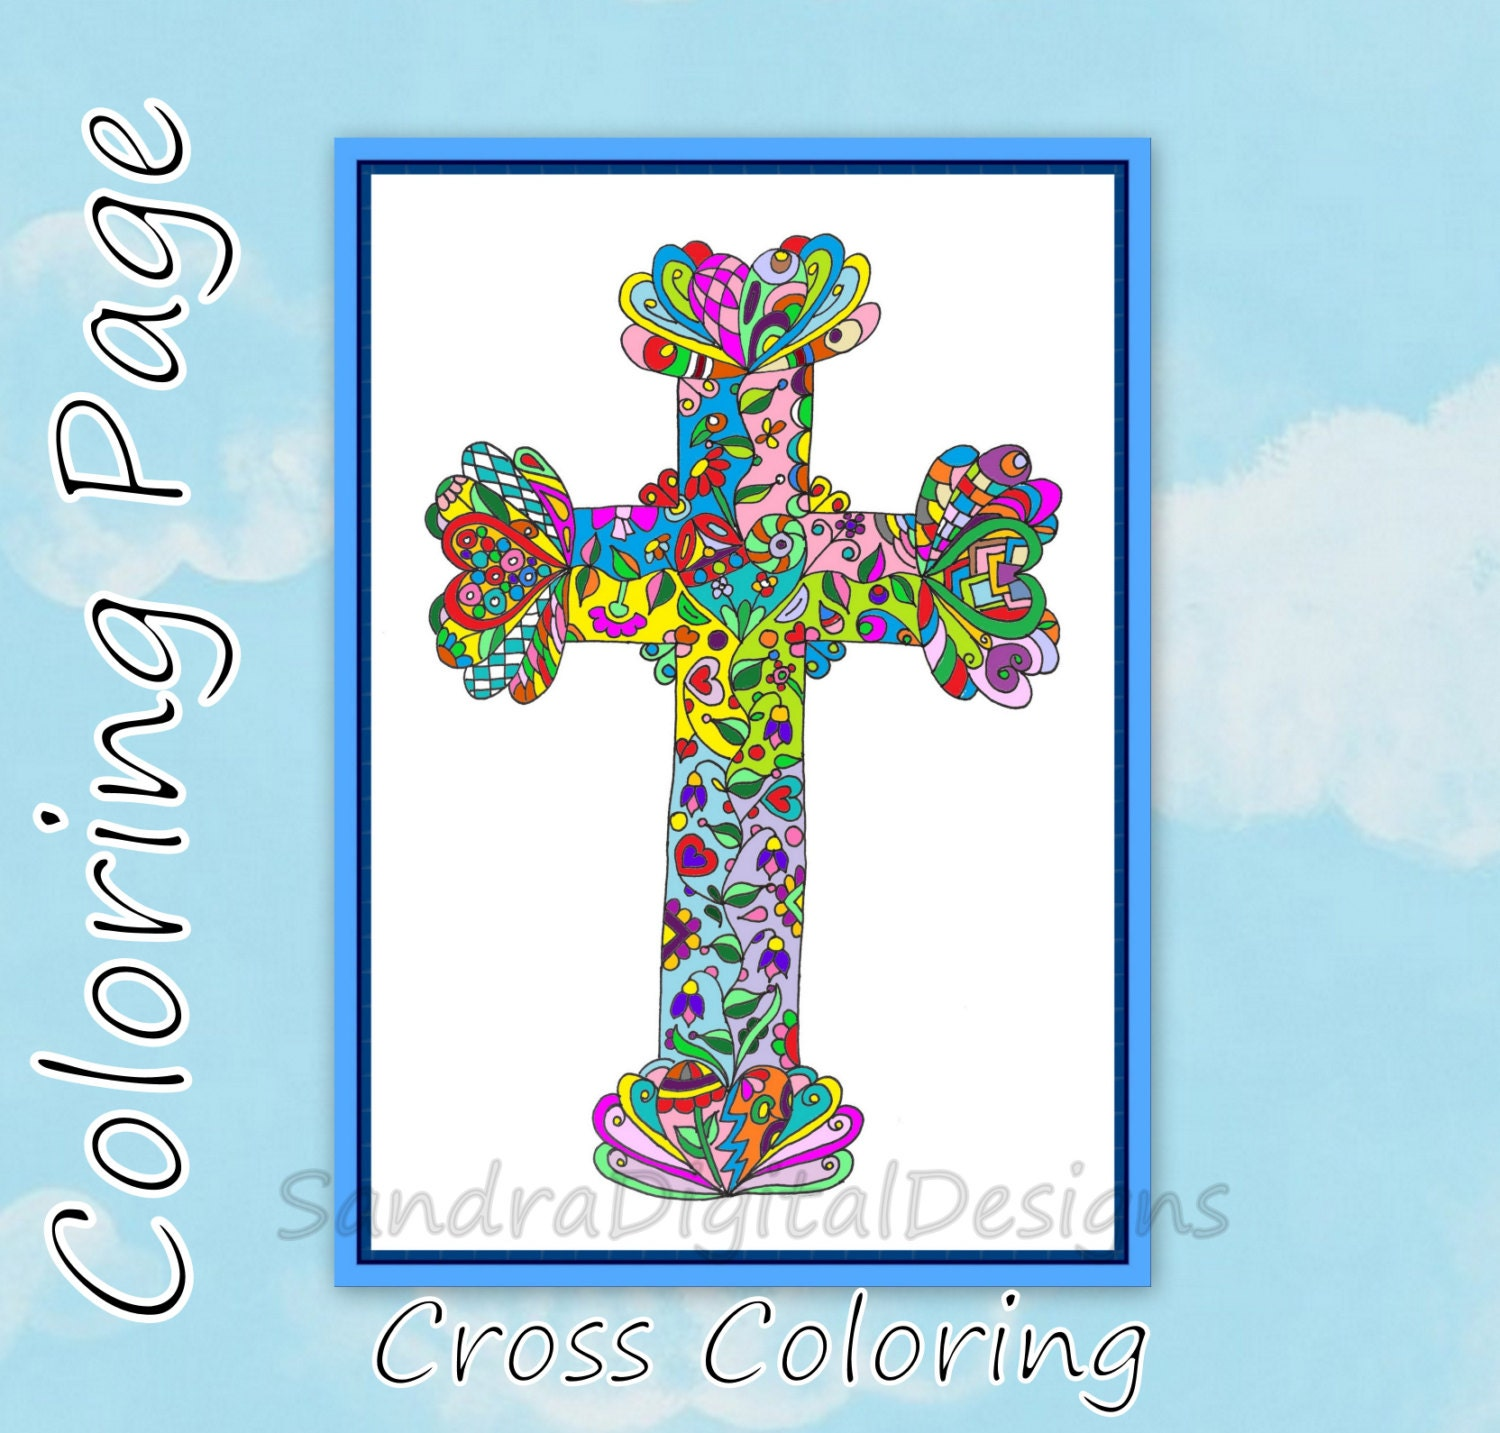 Coloring pages for adults crosses - This Is A Digital File